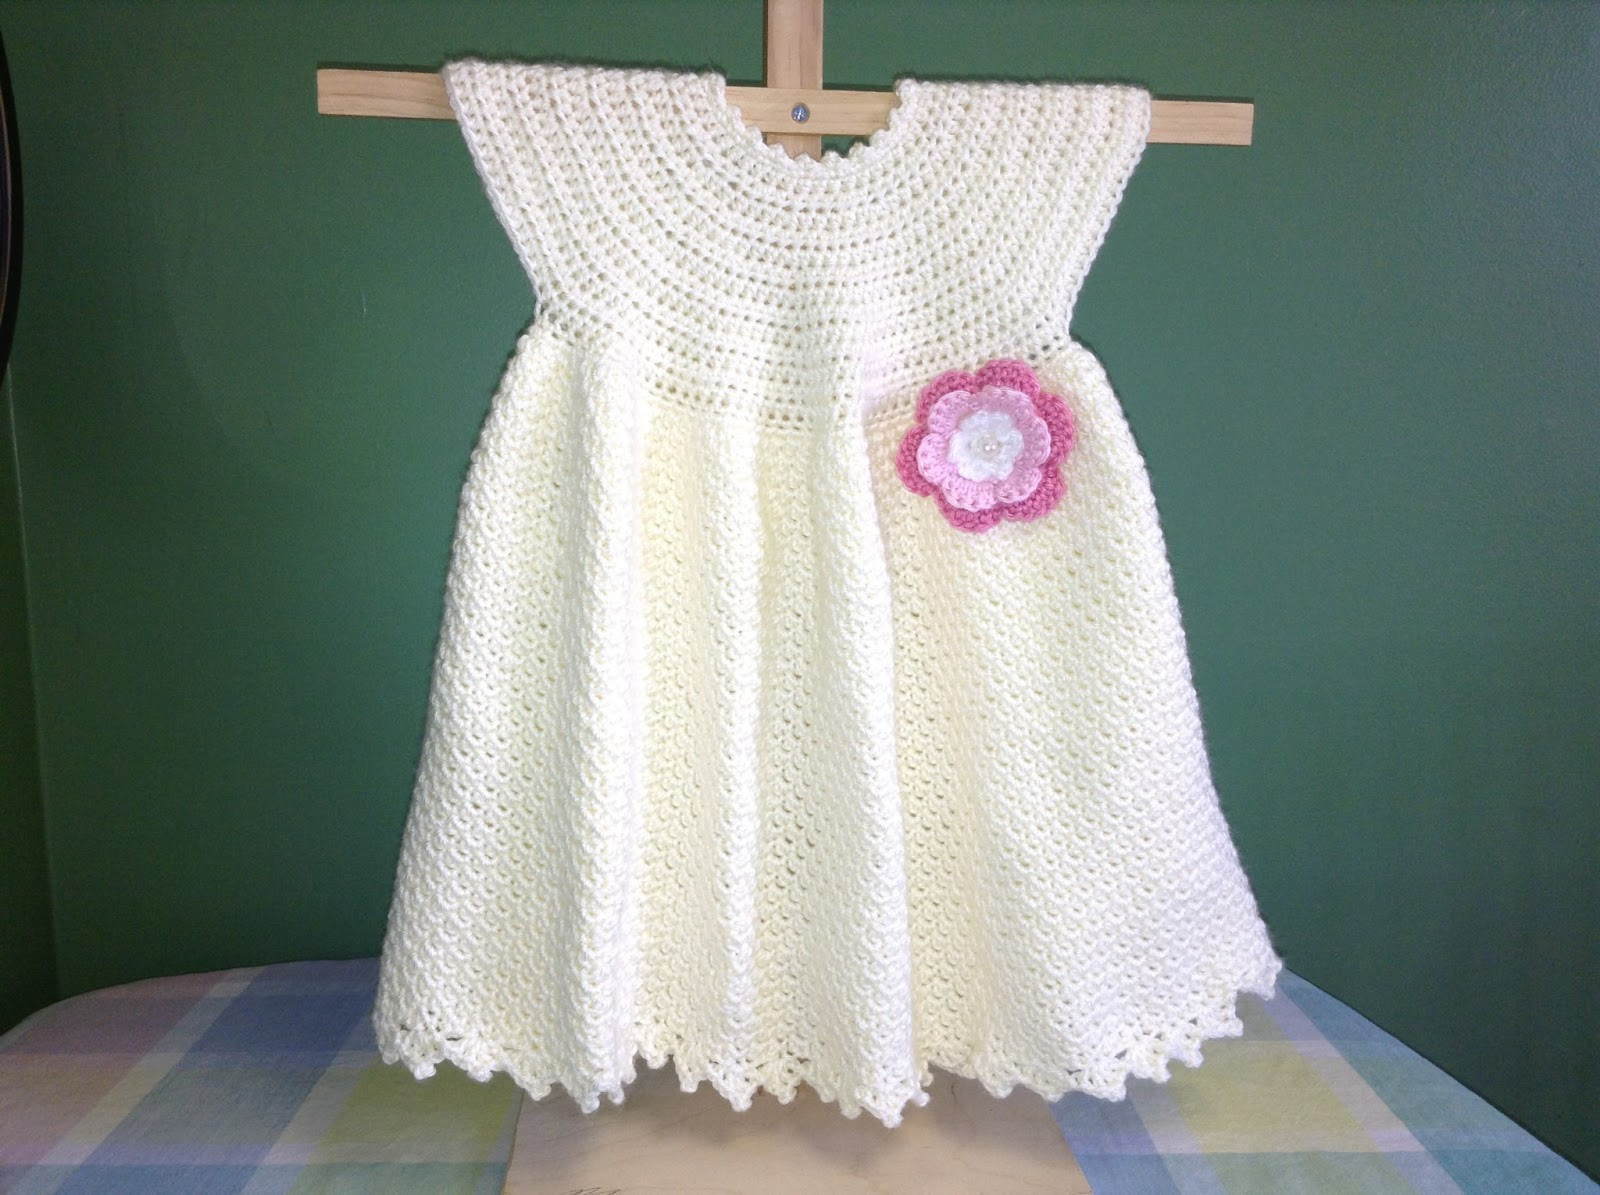 Crochet Baby Dress Patterns Awesome Anna S Free Baby Crochet Dress Patterns Inspiration and Of Awesome 42 Models Crochet Baby Dress Patterns